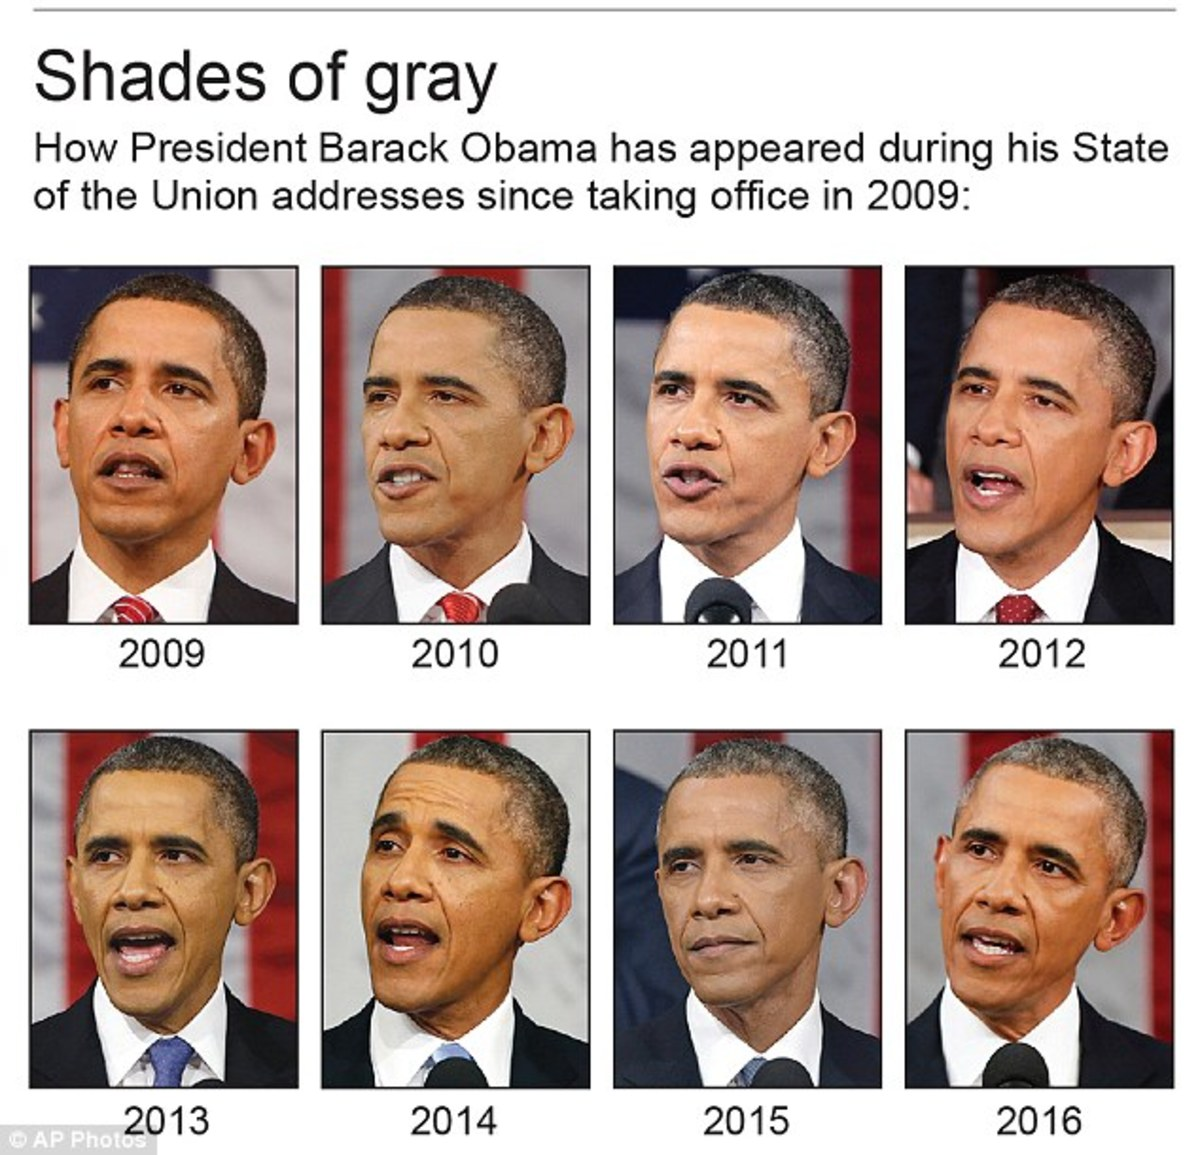 Changes President Obama made over the years when he was President of the United States.